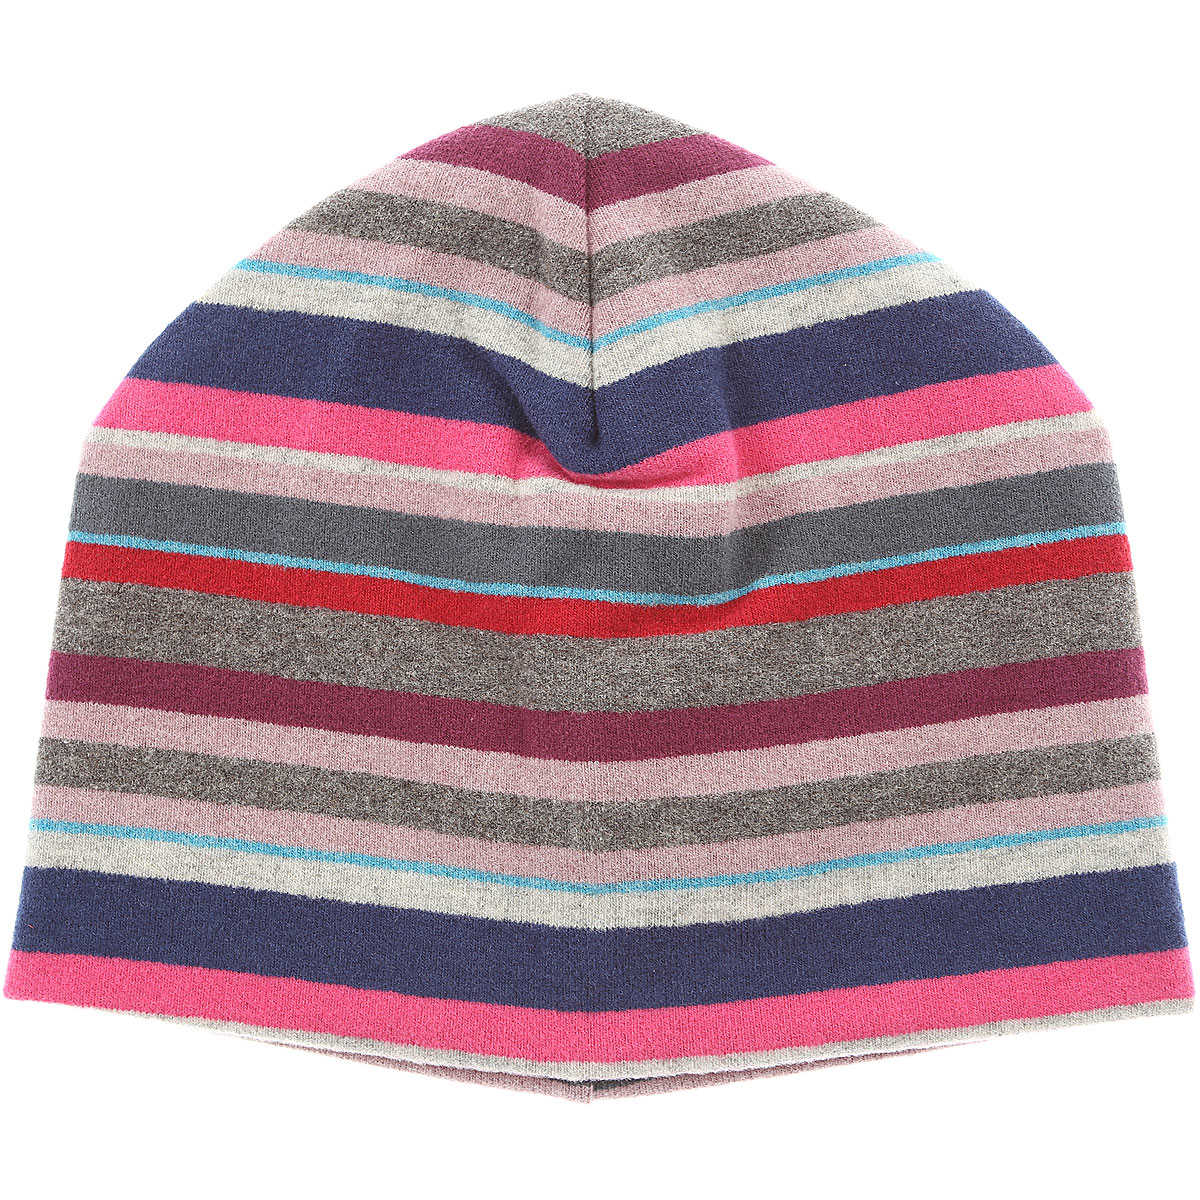 Gallo Kids Hats for Girls in Outlet Grey USA - GOOFASH